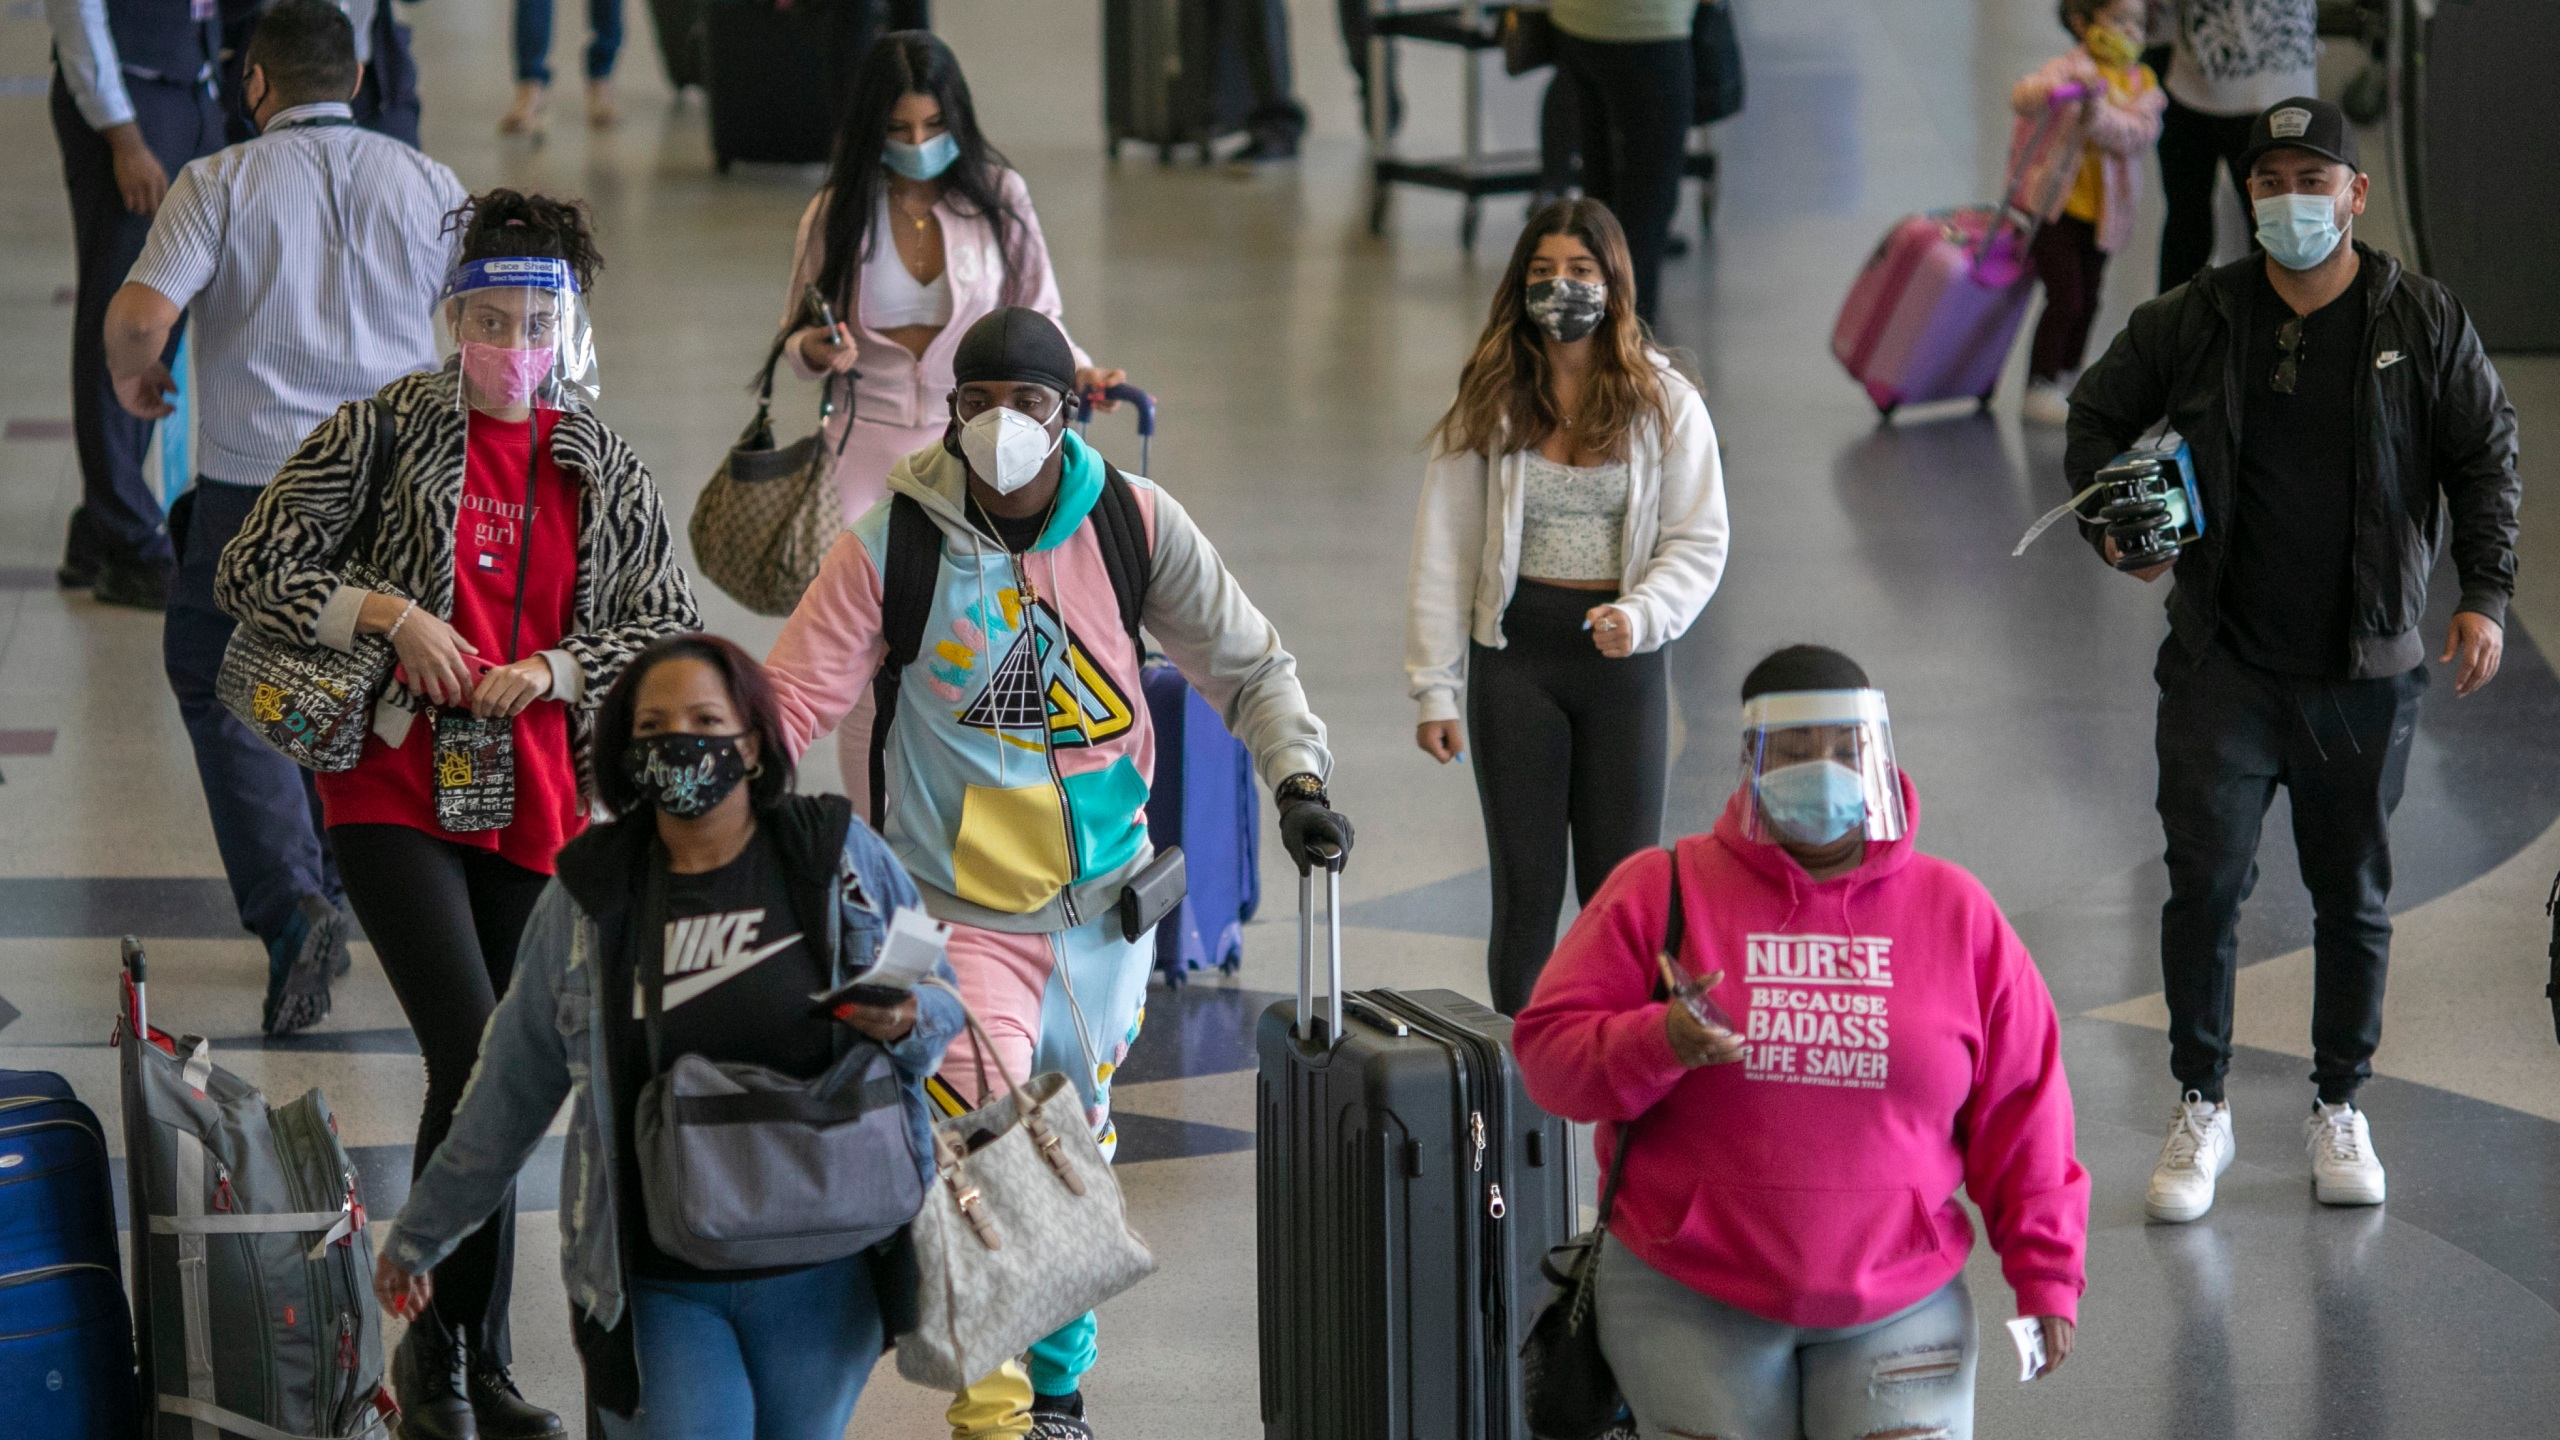 Holiday travelers pass through Los Angeles international Airport on Thanksgiving eve on Nov. 25, 2020. (David McNew/Getty Images)